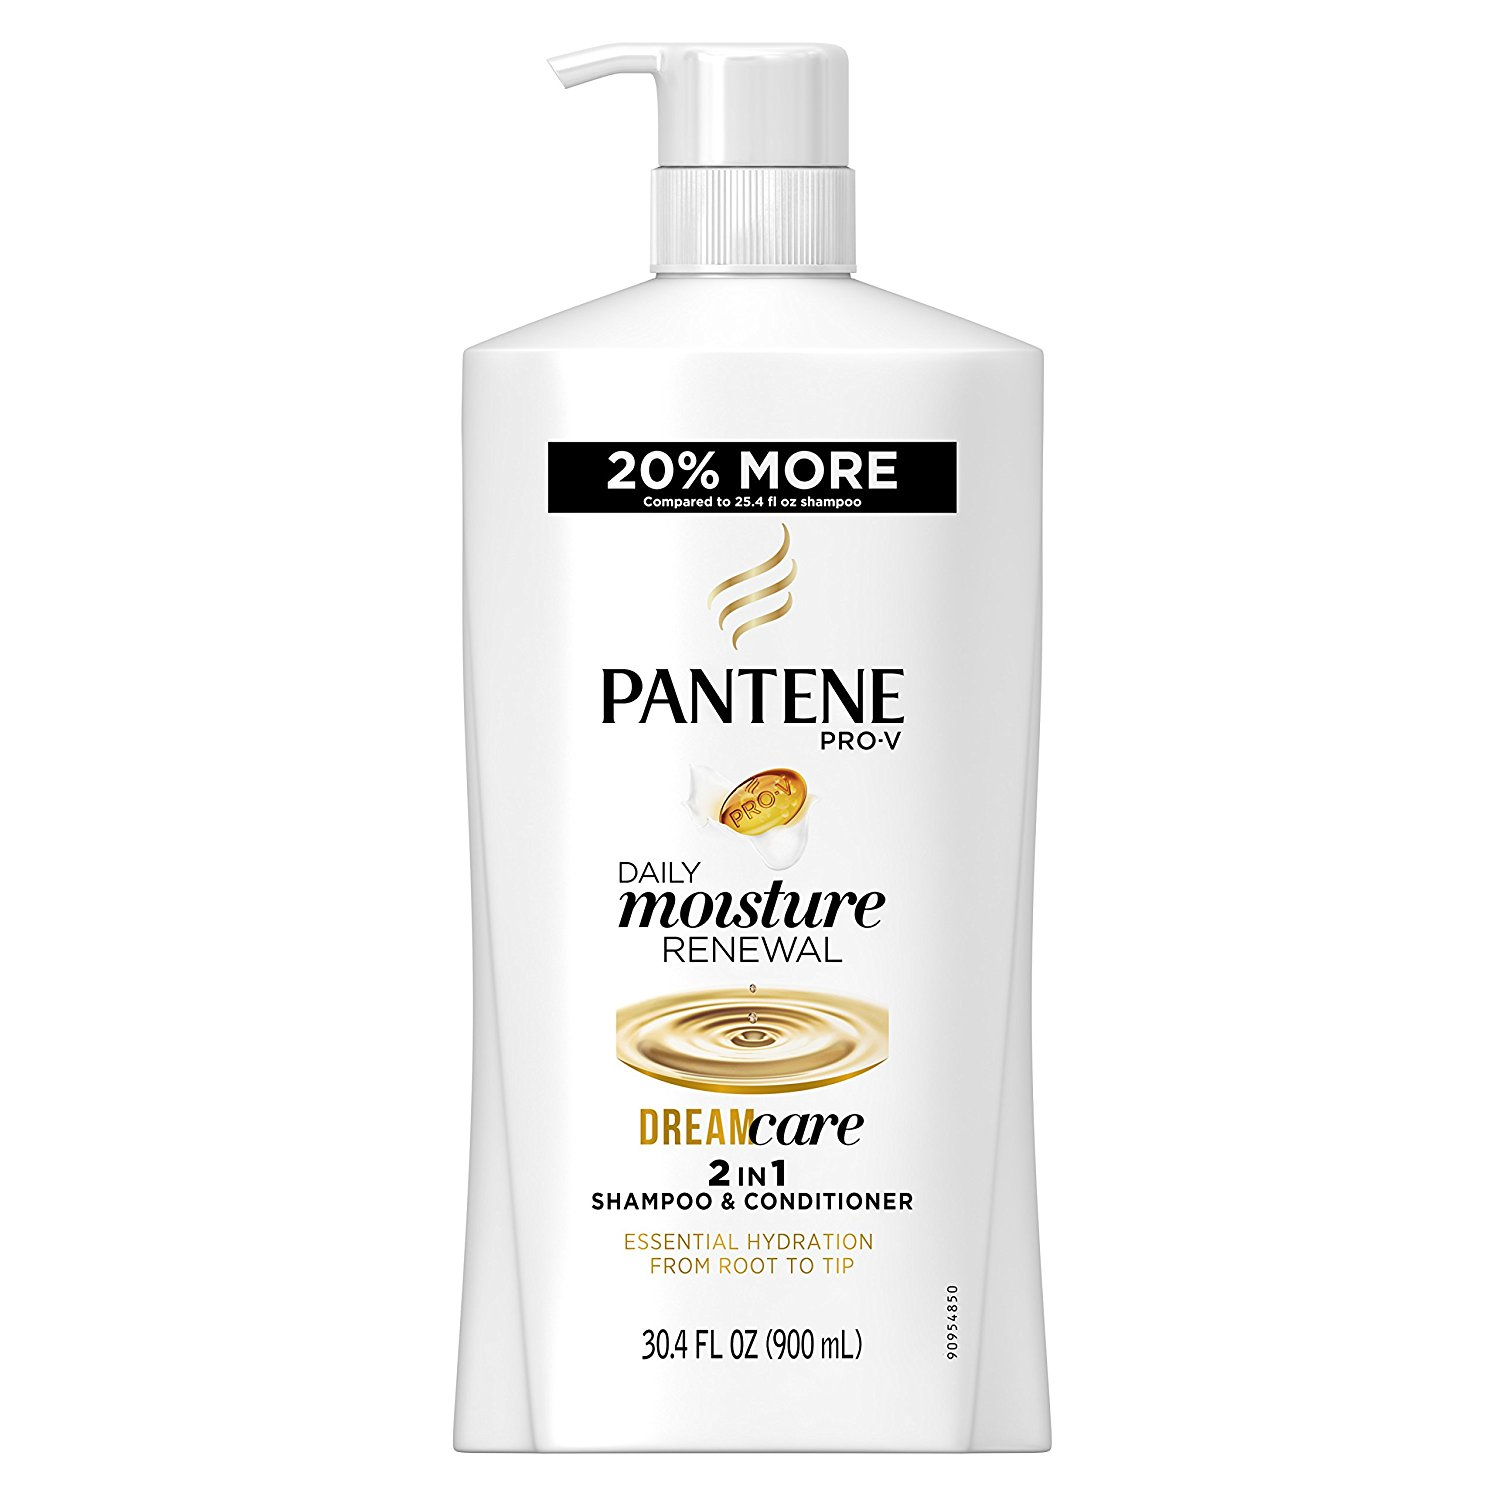 Pantene Pro-V Daily Moisture Renewal 2 In 1 Shampoo and Conditioner, 30.4 Fluid Ounce (Pack of 4) (Packaging May Vary)